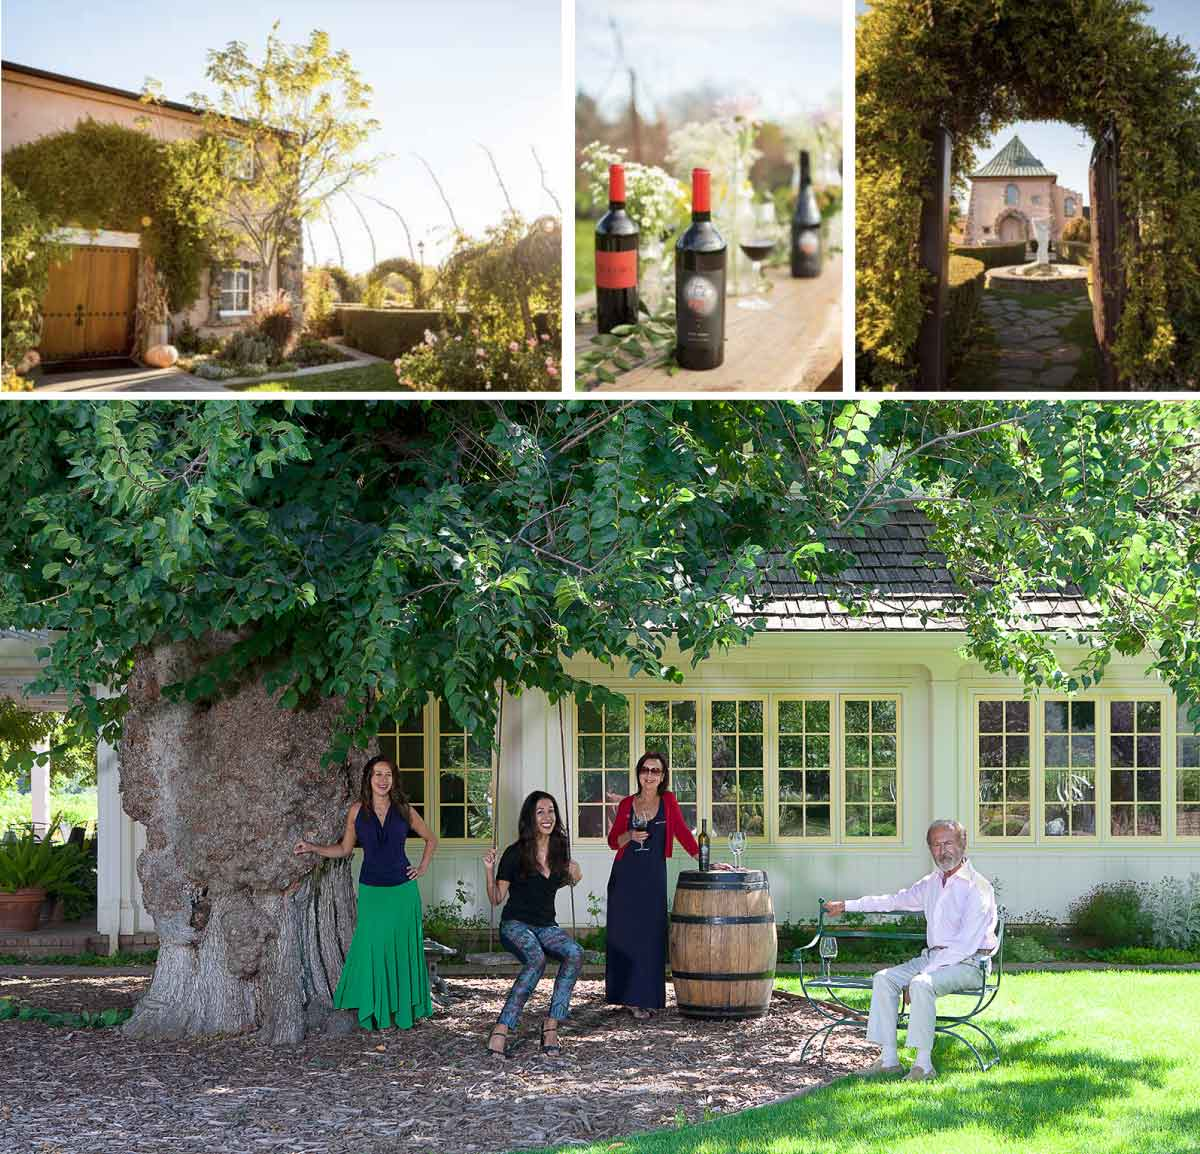 Images of the winery and of the Peju family vía Peju's Website.